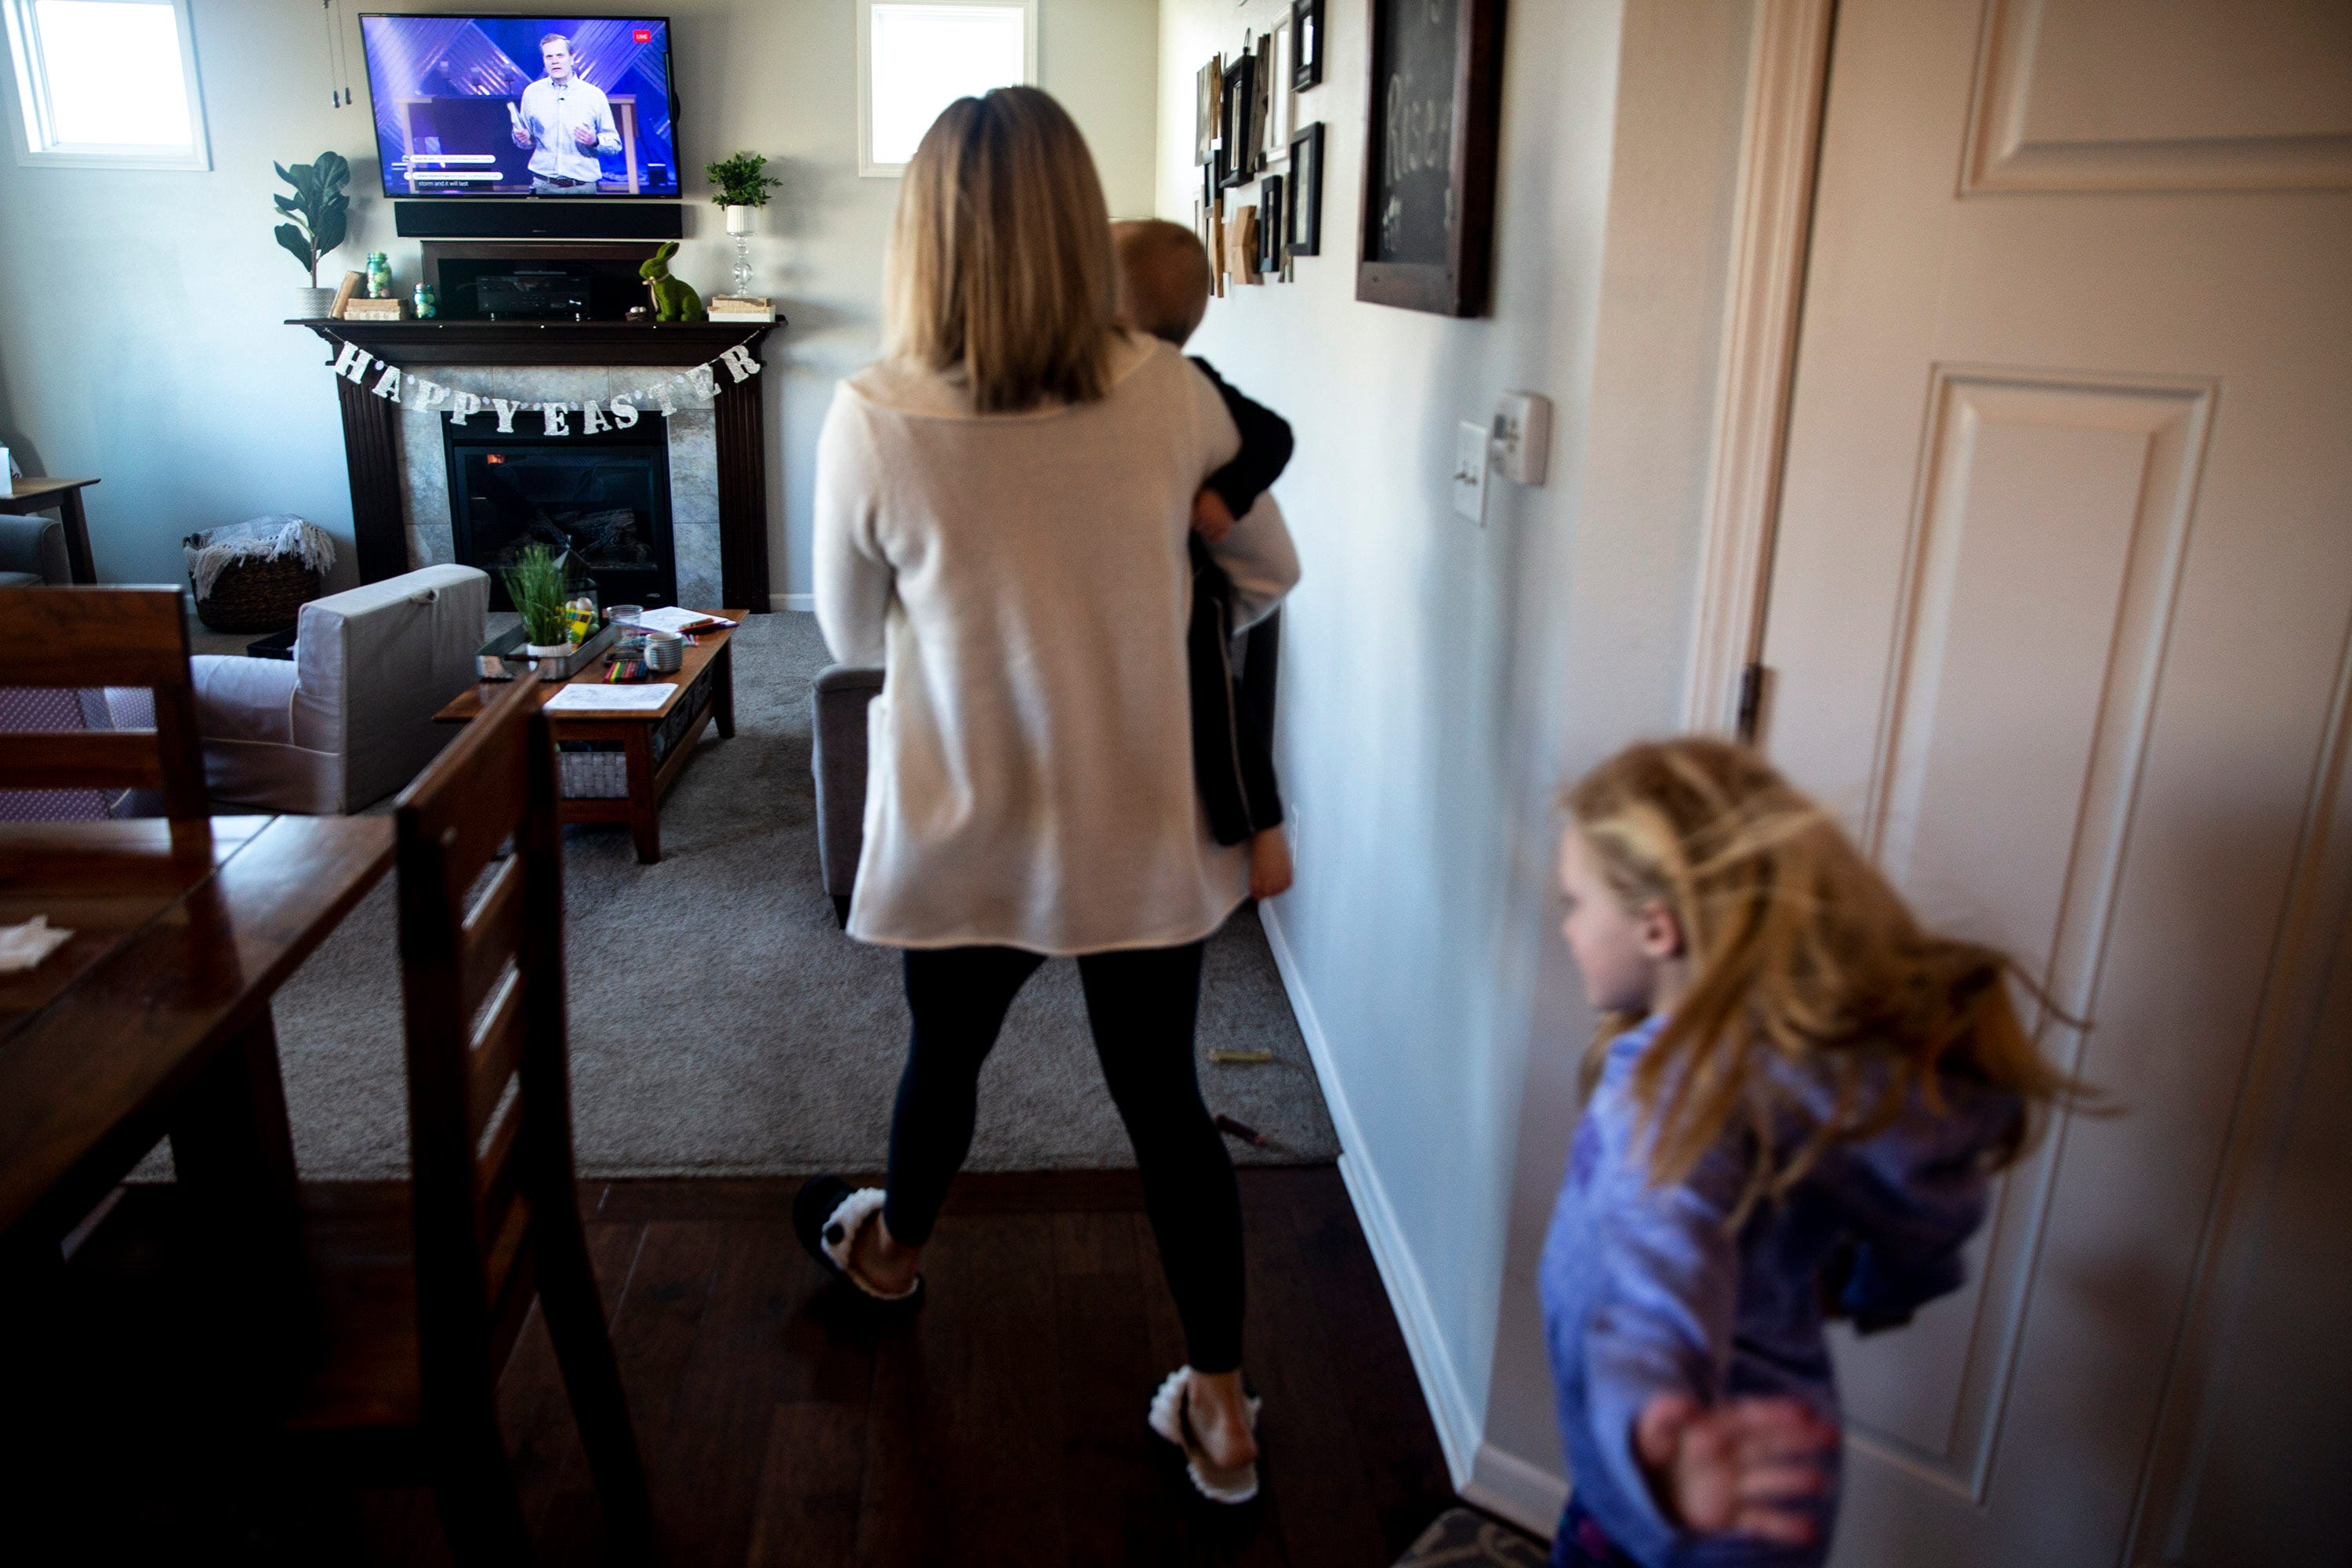 Asheley Burch carries her son, Hudson, while her daughter, Harper, follows, back to their living room to watch the livestream of Lutheran Church of Hope's Sunday morning service on March 29, 2020, from the family's home in Waukee. Themed coloring pages, books and games were used to keep the kids entertained during the service.